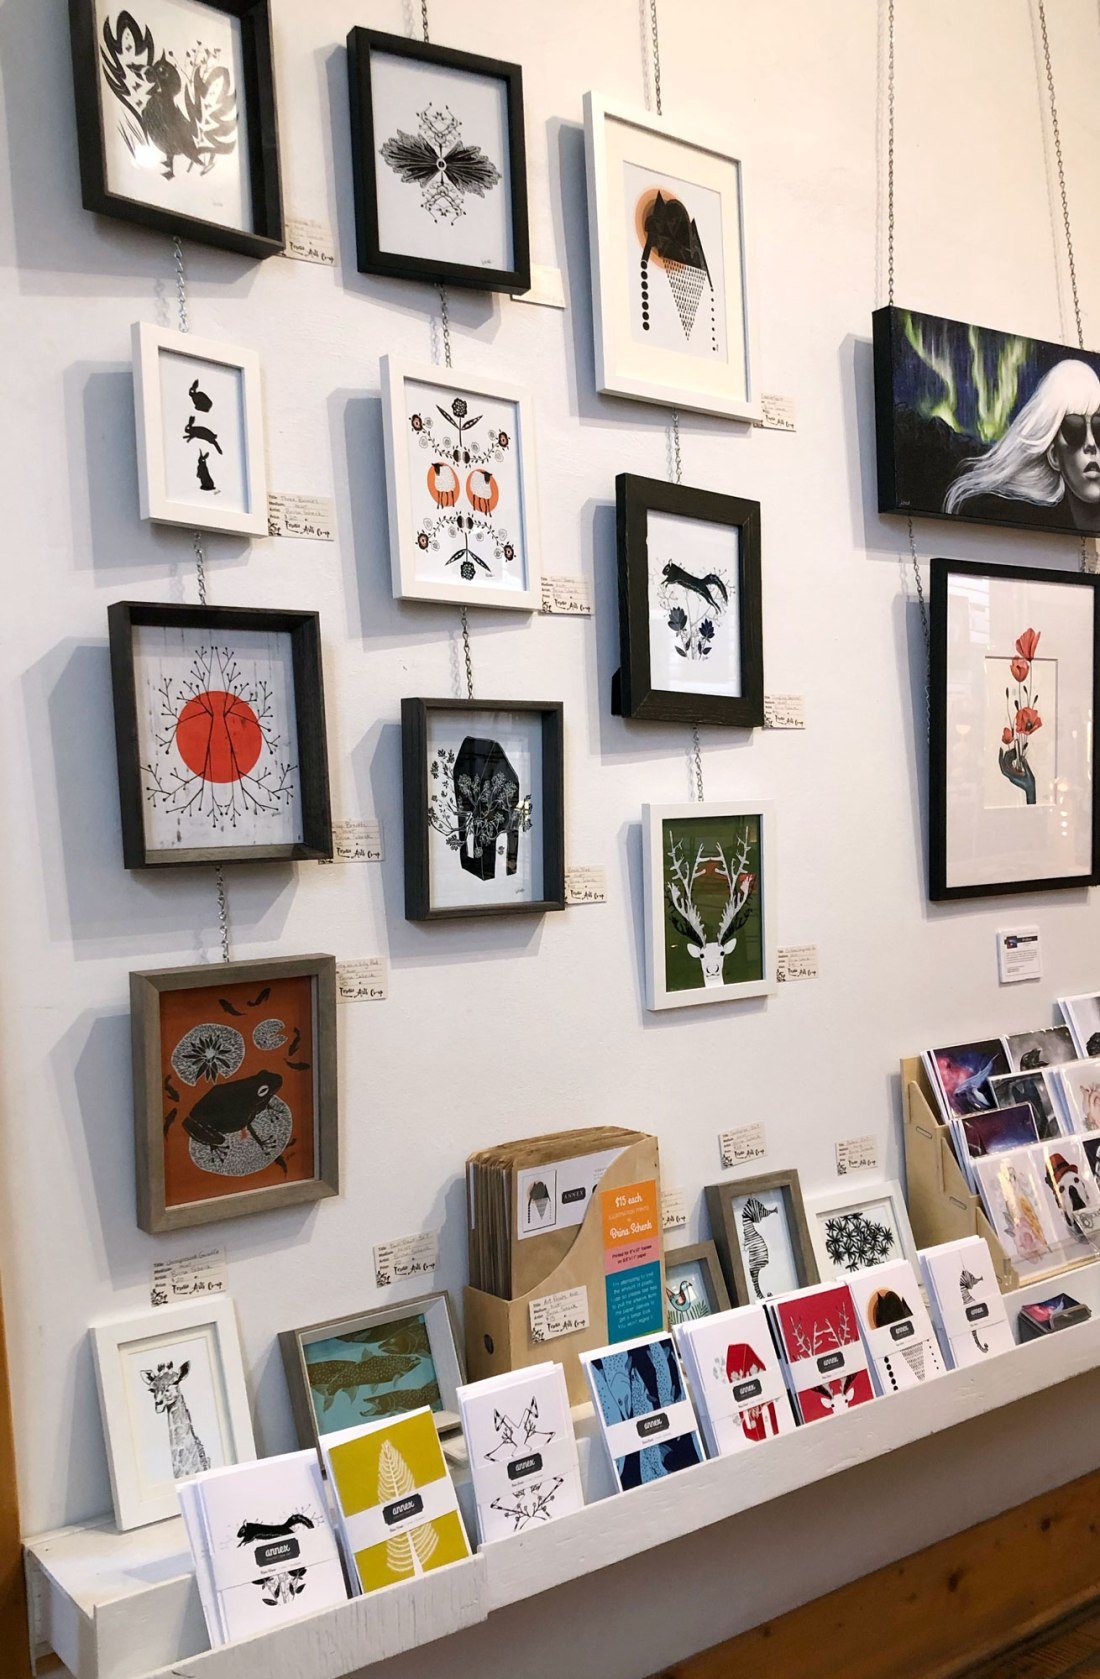 Brina Schenk's art at Fernie Arts Co-op in Fernie BC - wall art and blank art cards with other local artists